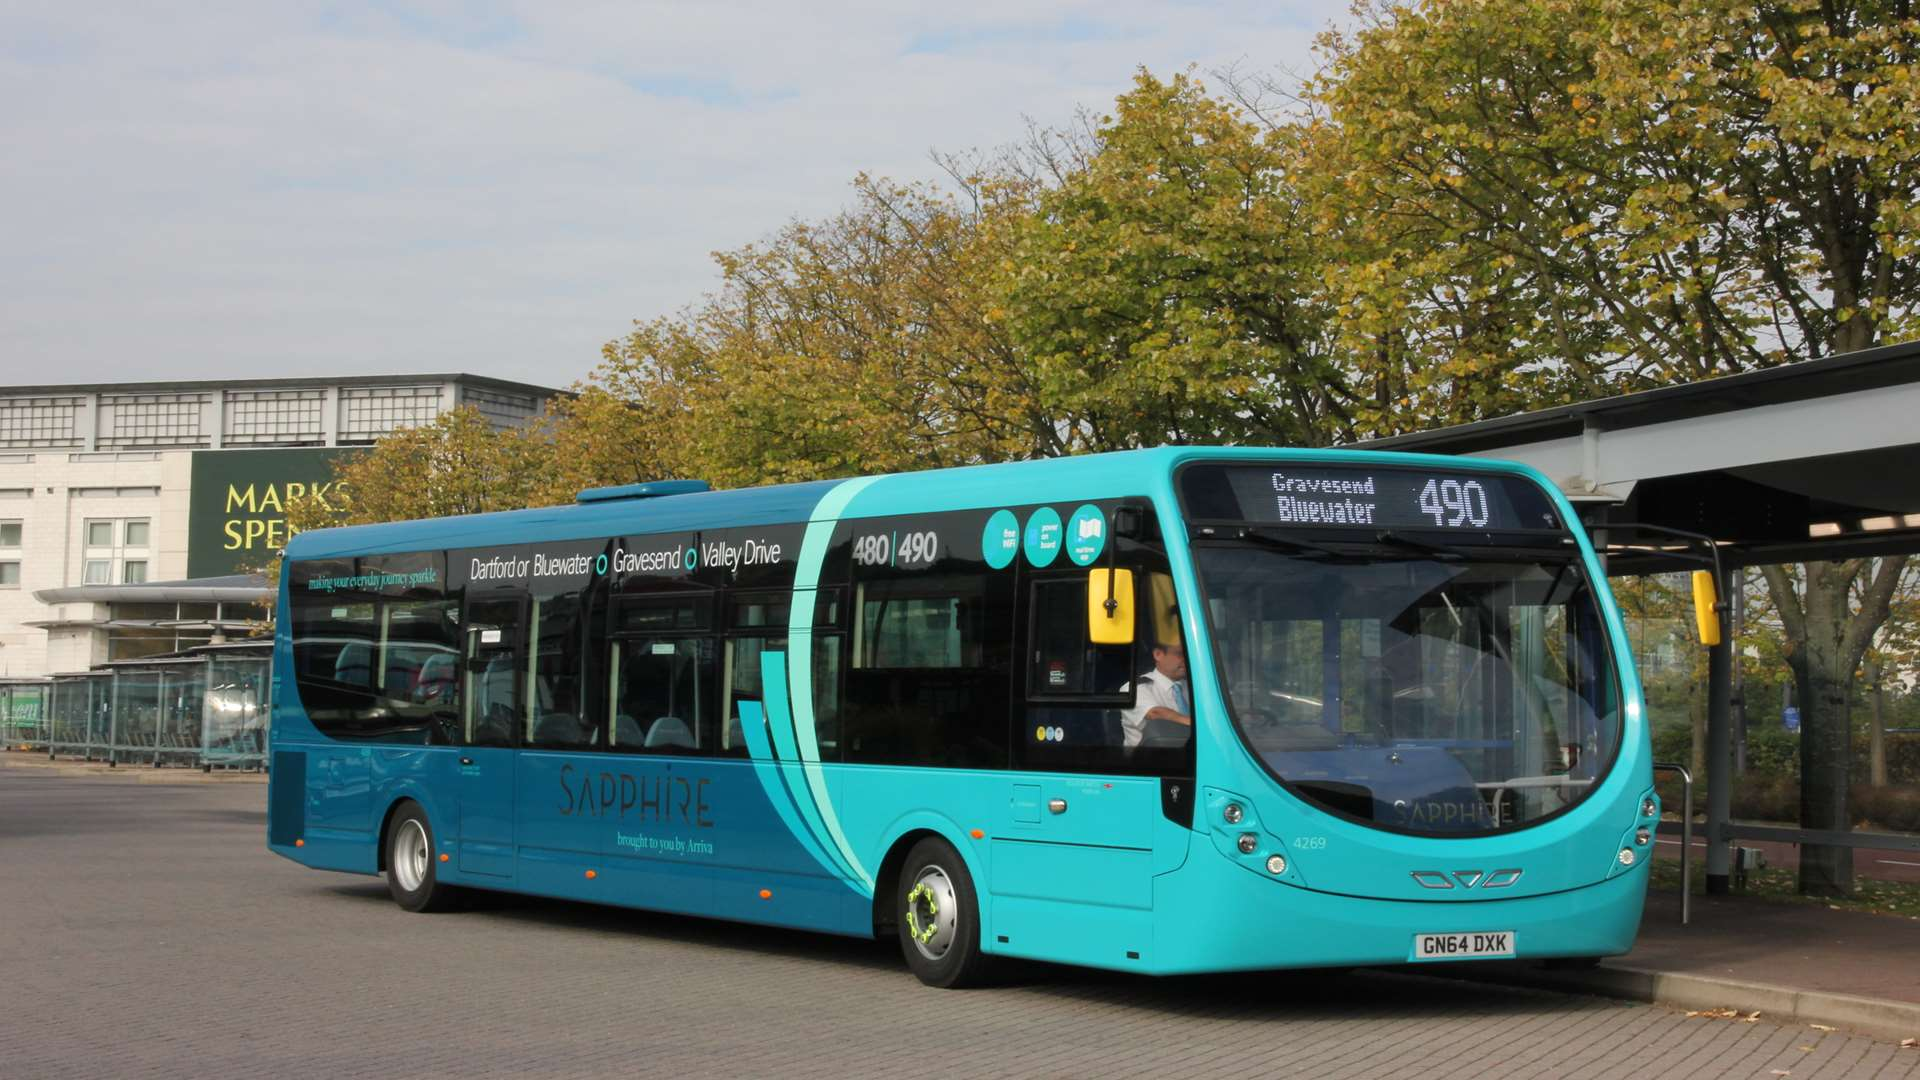 Arriva is under fire for the changes